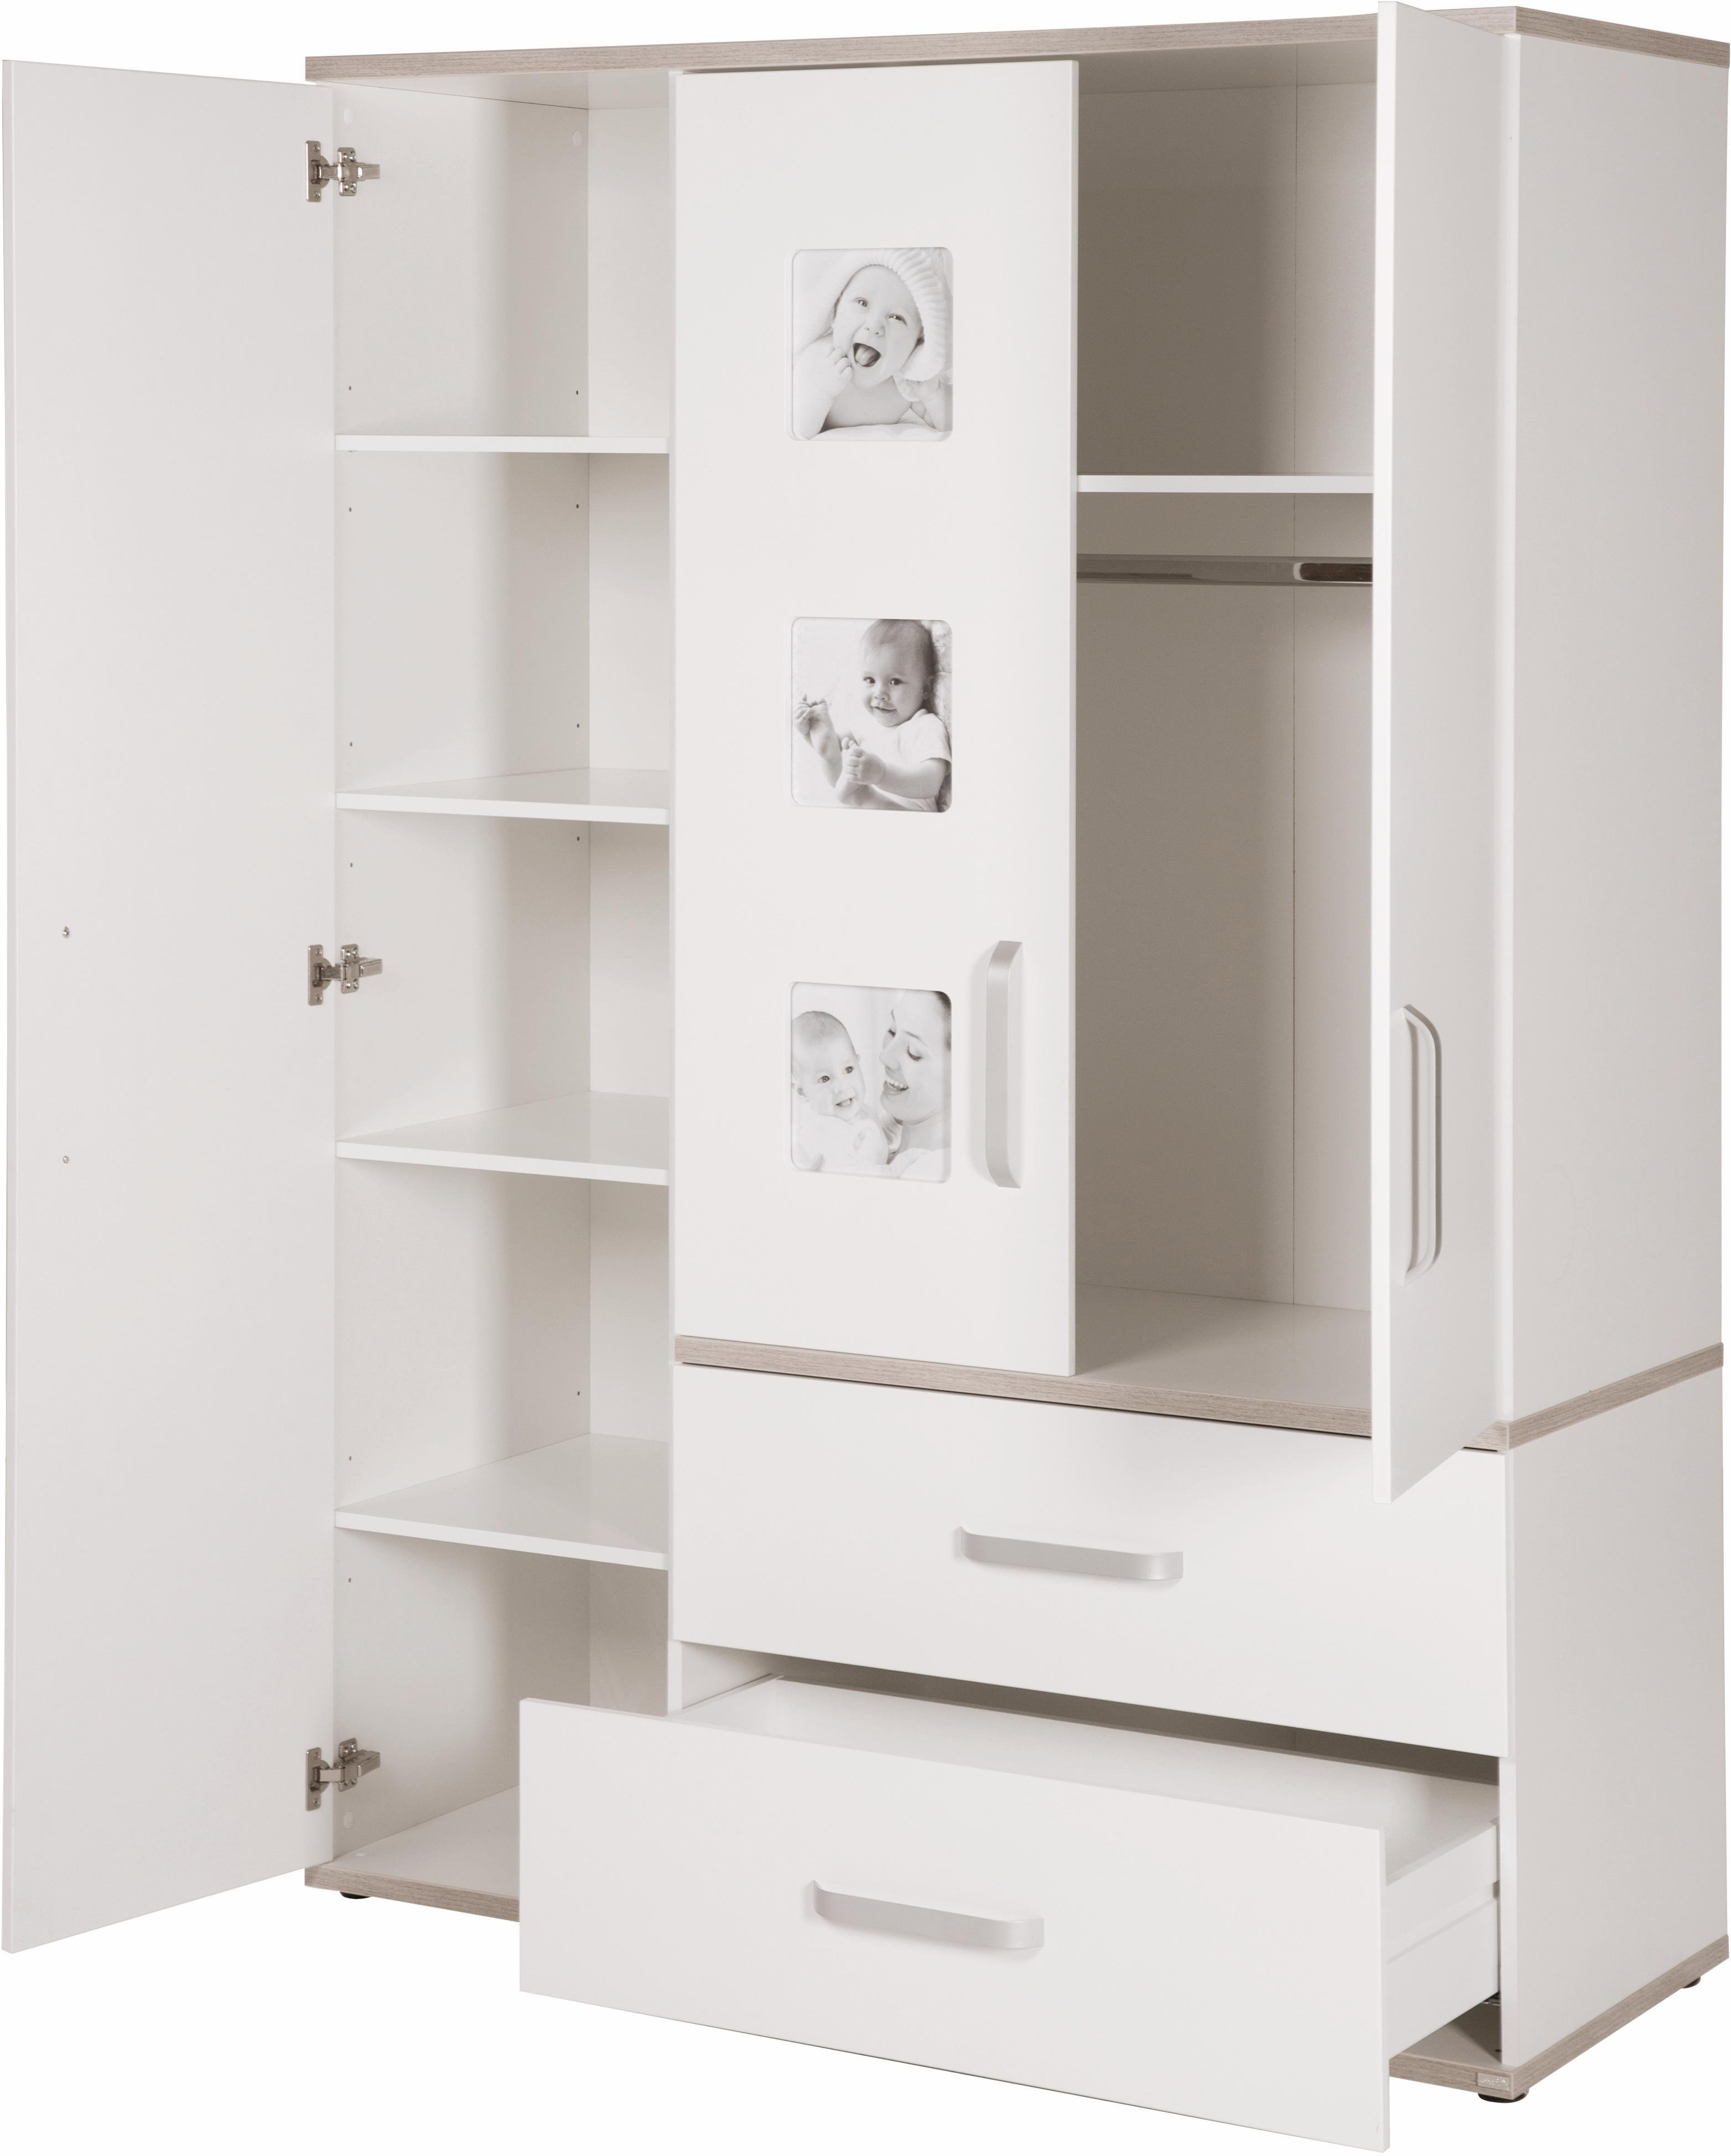 Babykamer Set 3 Dlg Kinderkamer Moritz Breed